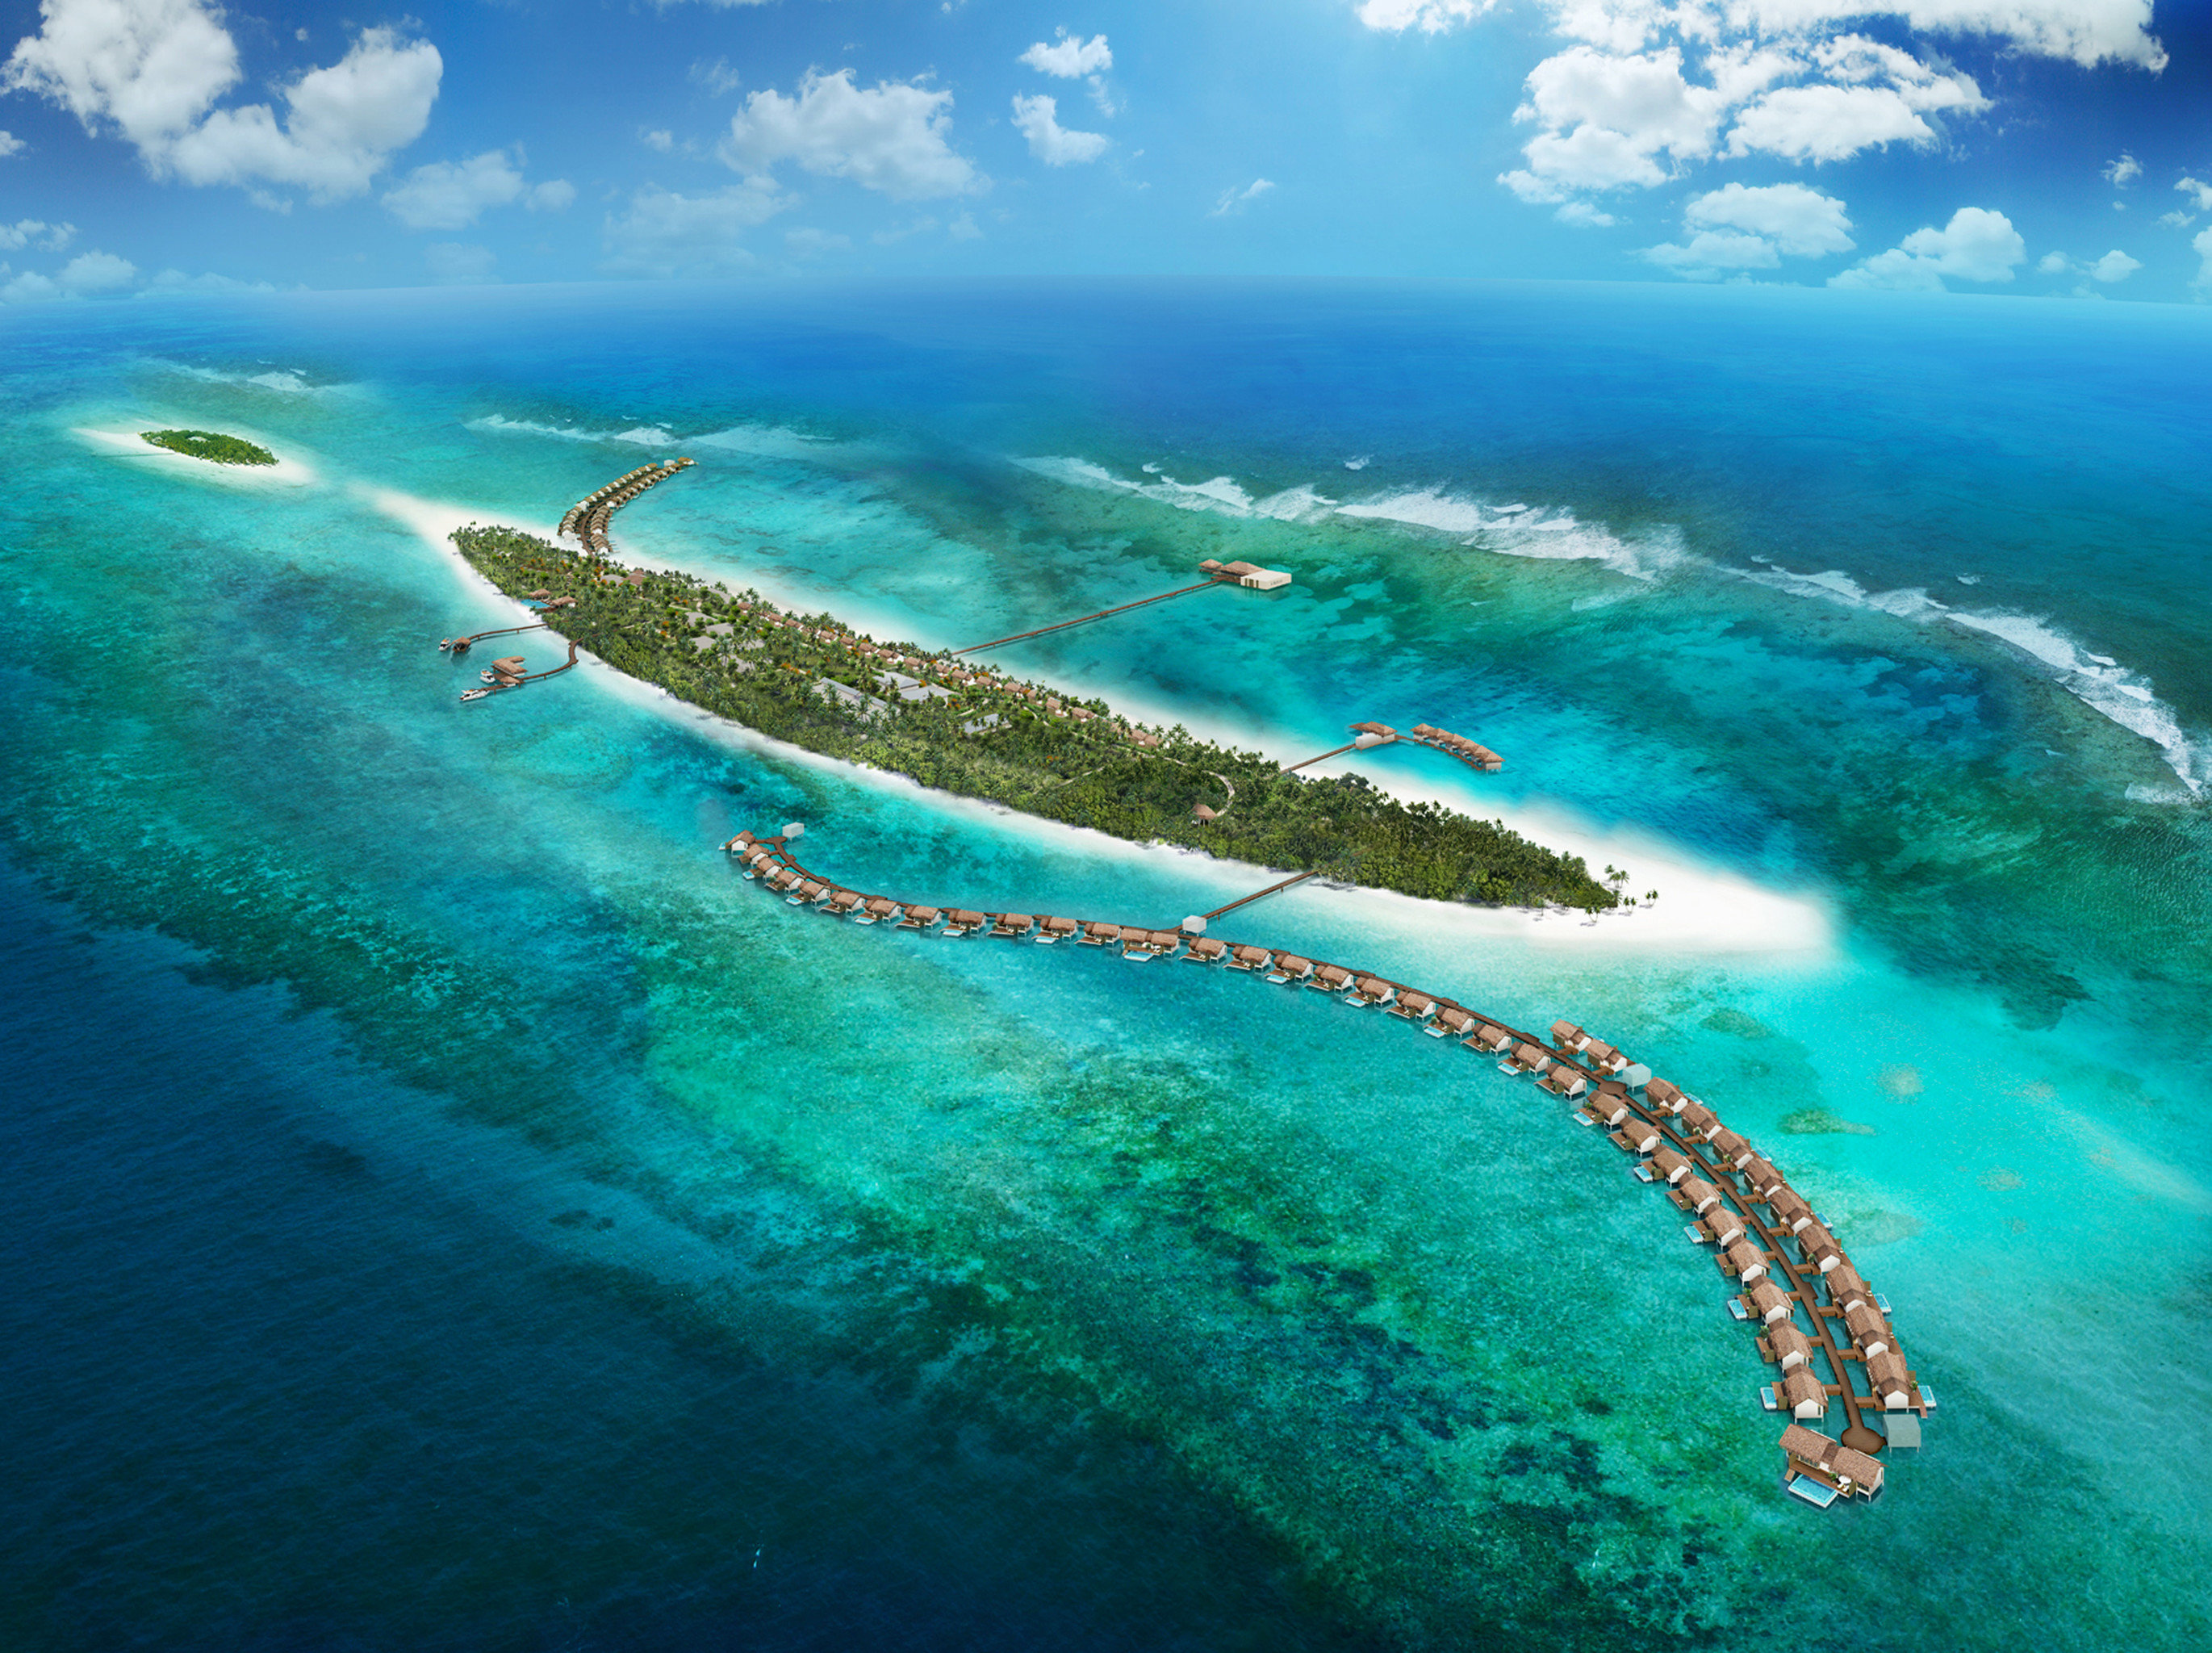 Exterior Grounds Island Luxury Ocean Tropical water sky marine biology Sea reef coral reef biology archipelago Nature Coast wind wave underwater atoll islet blue water sport wave caribbean cape day